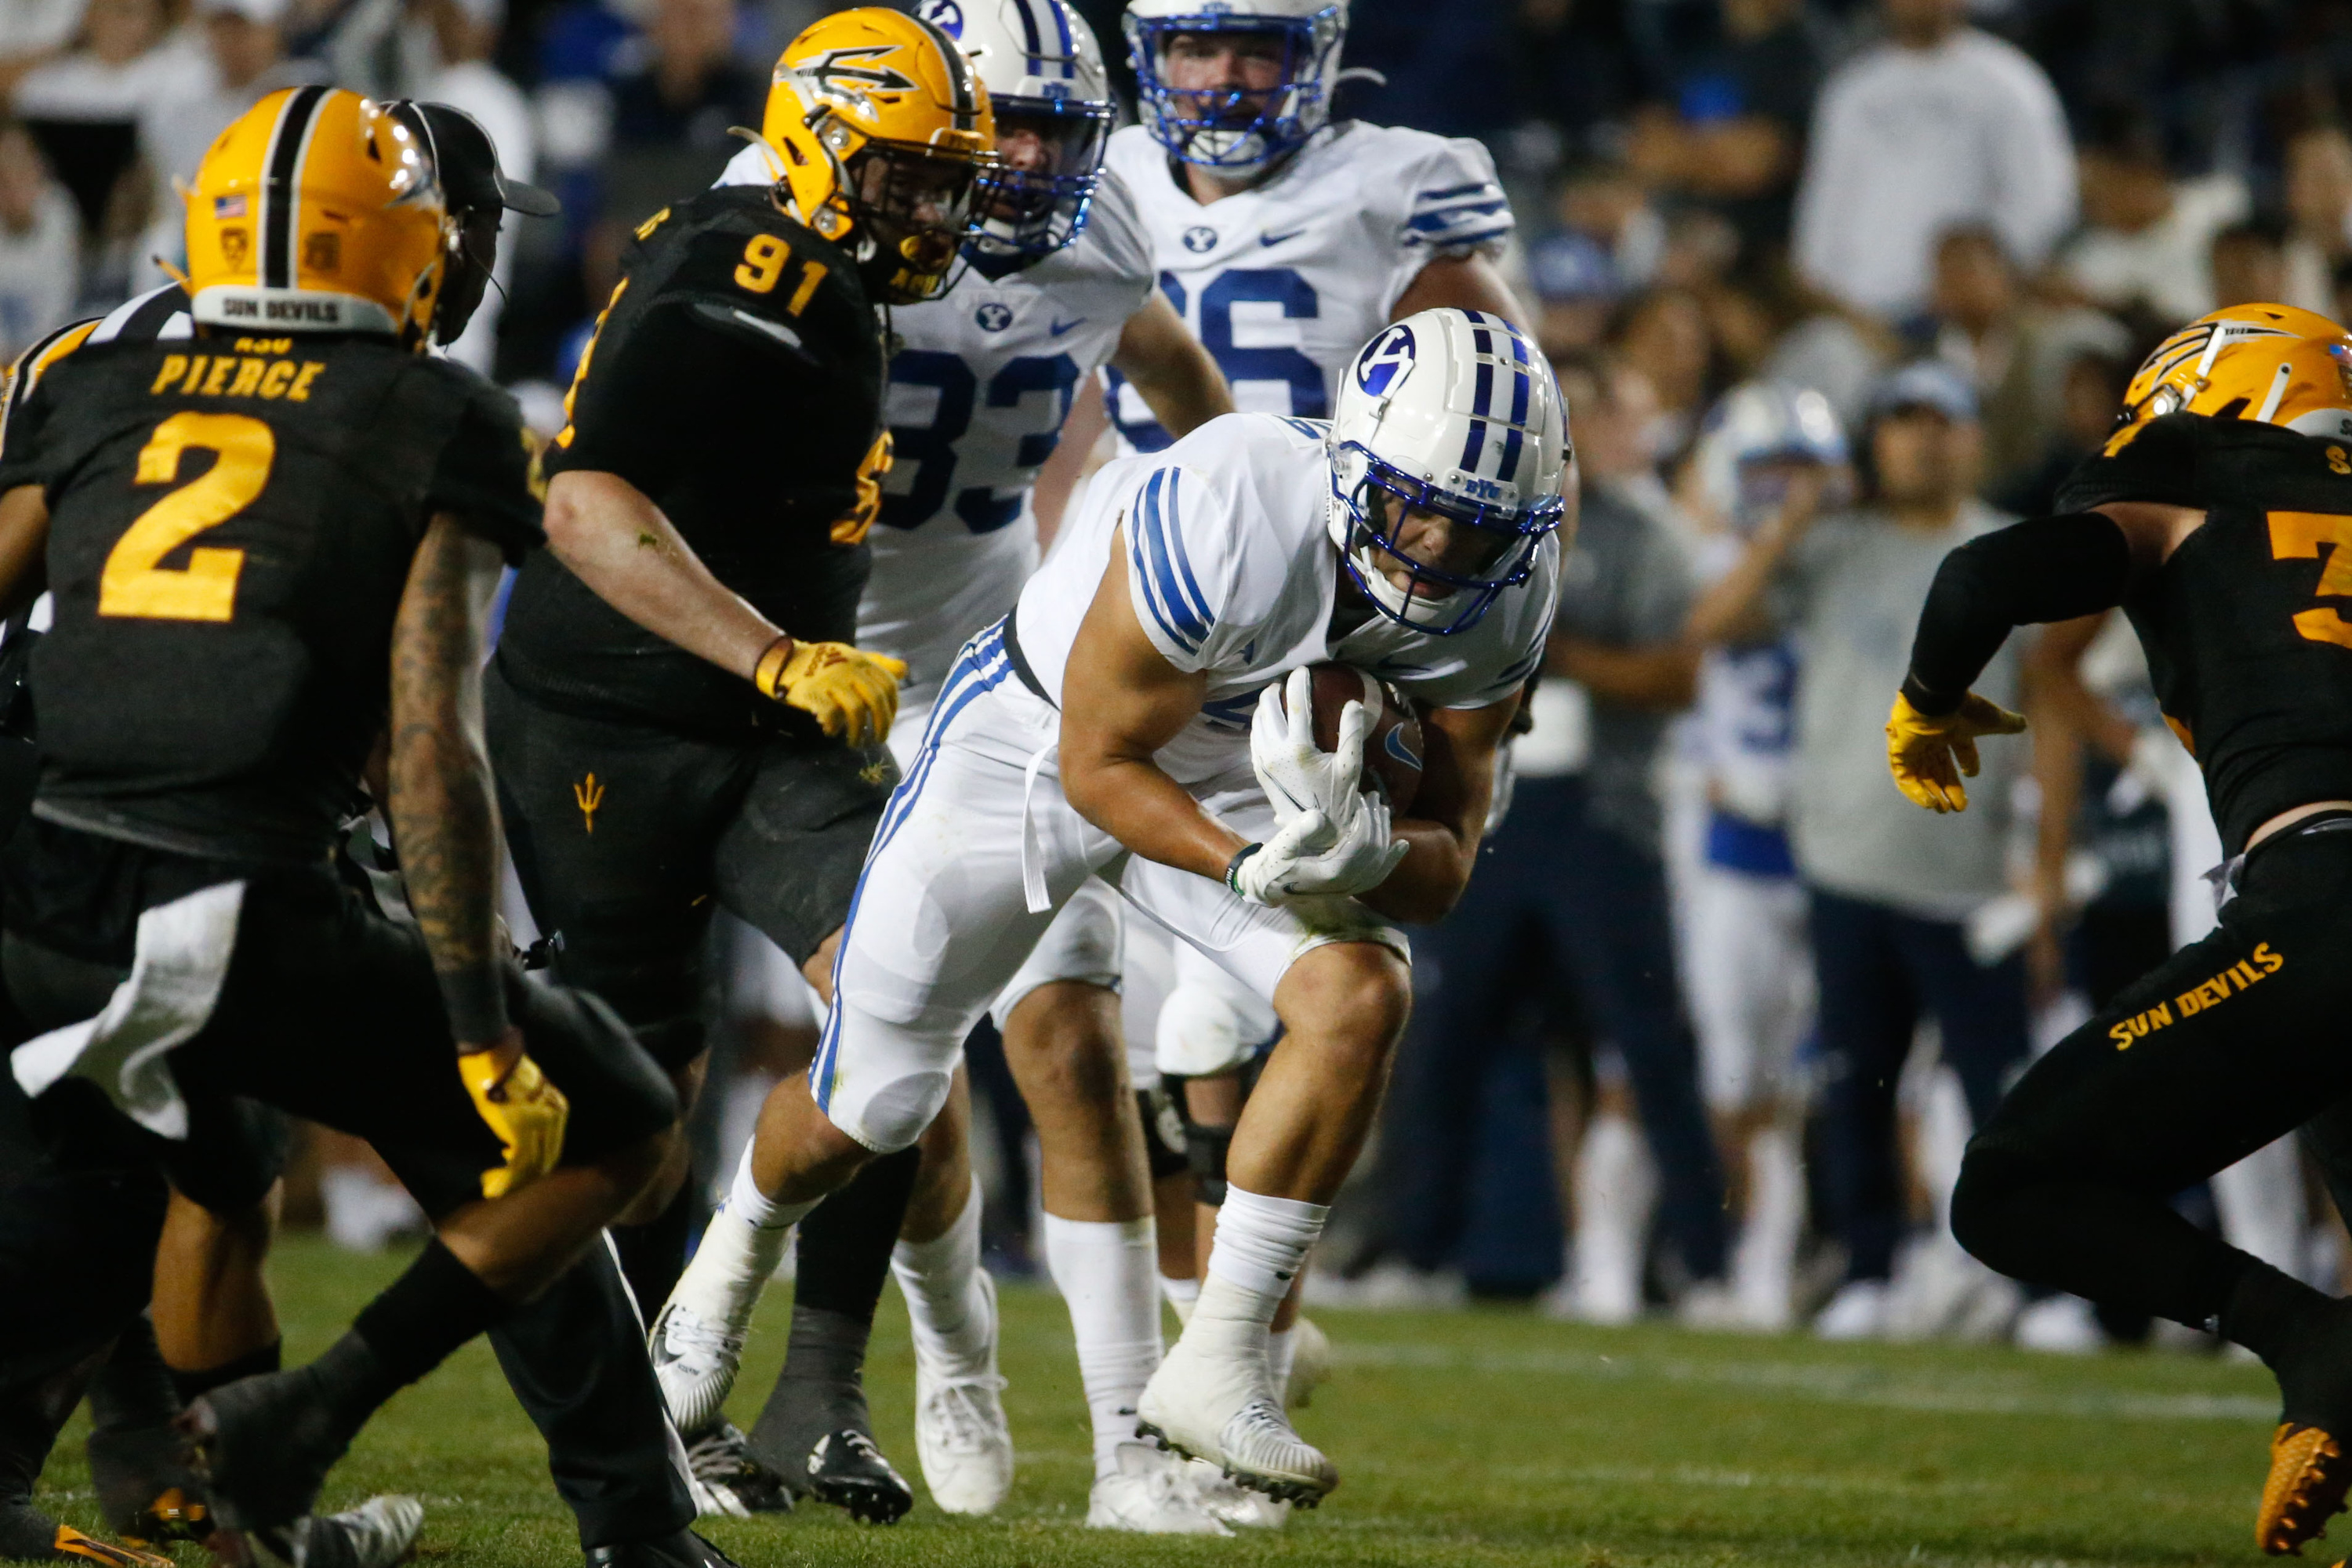 Brigham Young running back Lopini Katoa, center, runs under pressure during game against Arizona State in Provo.